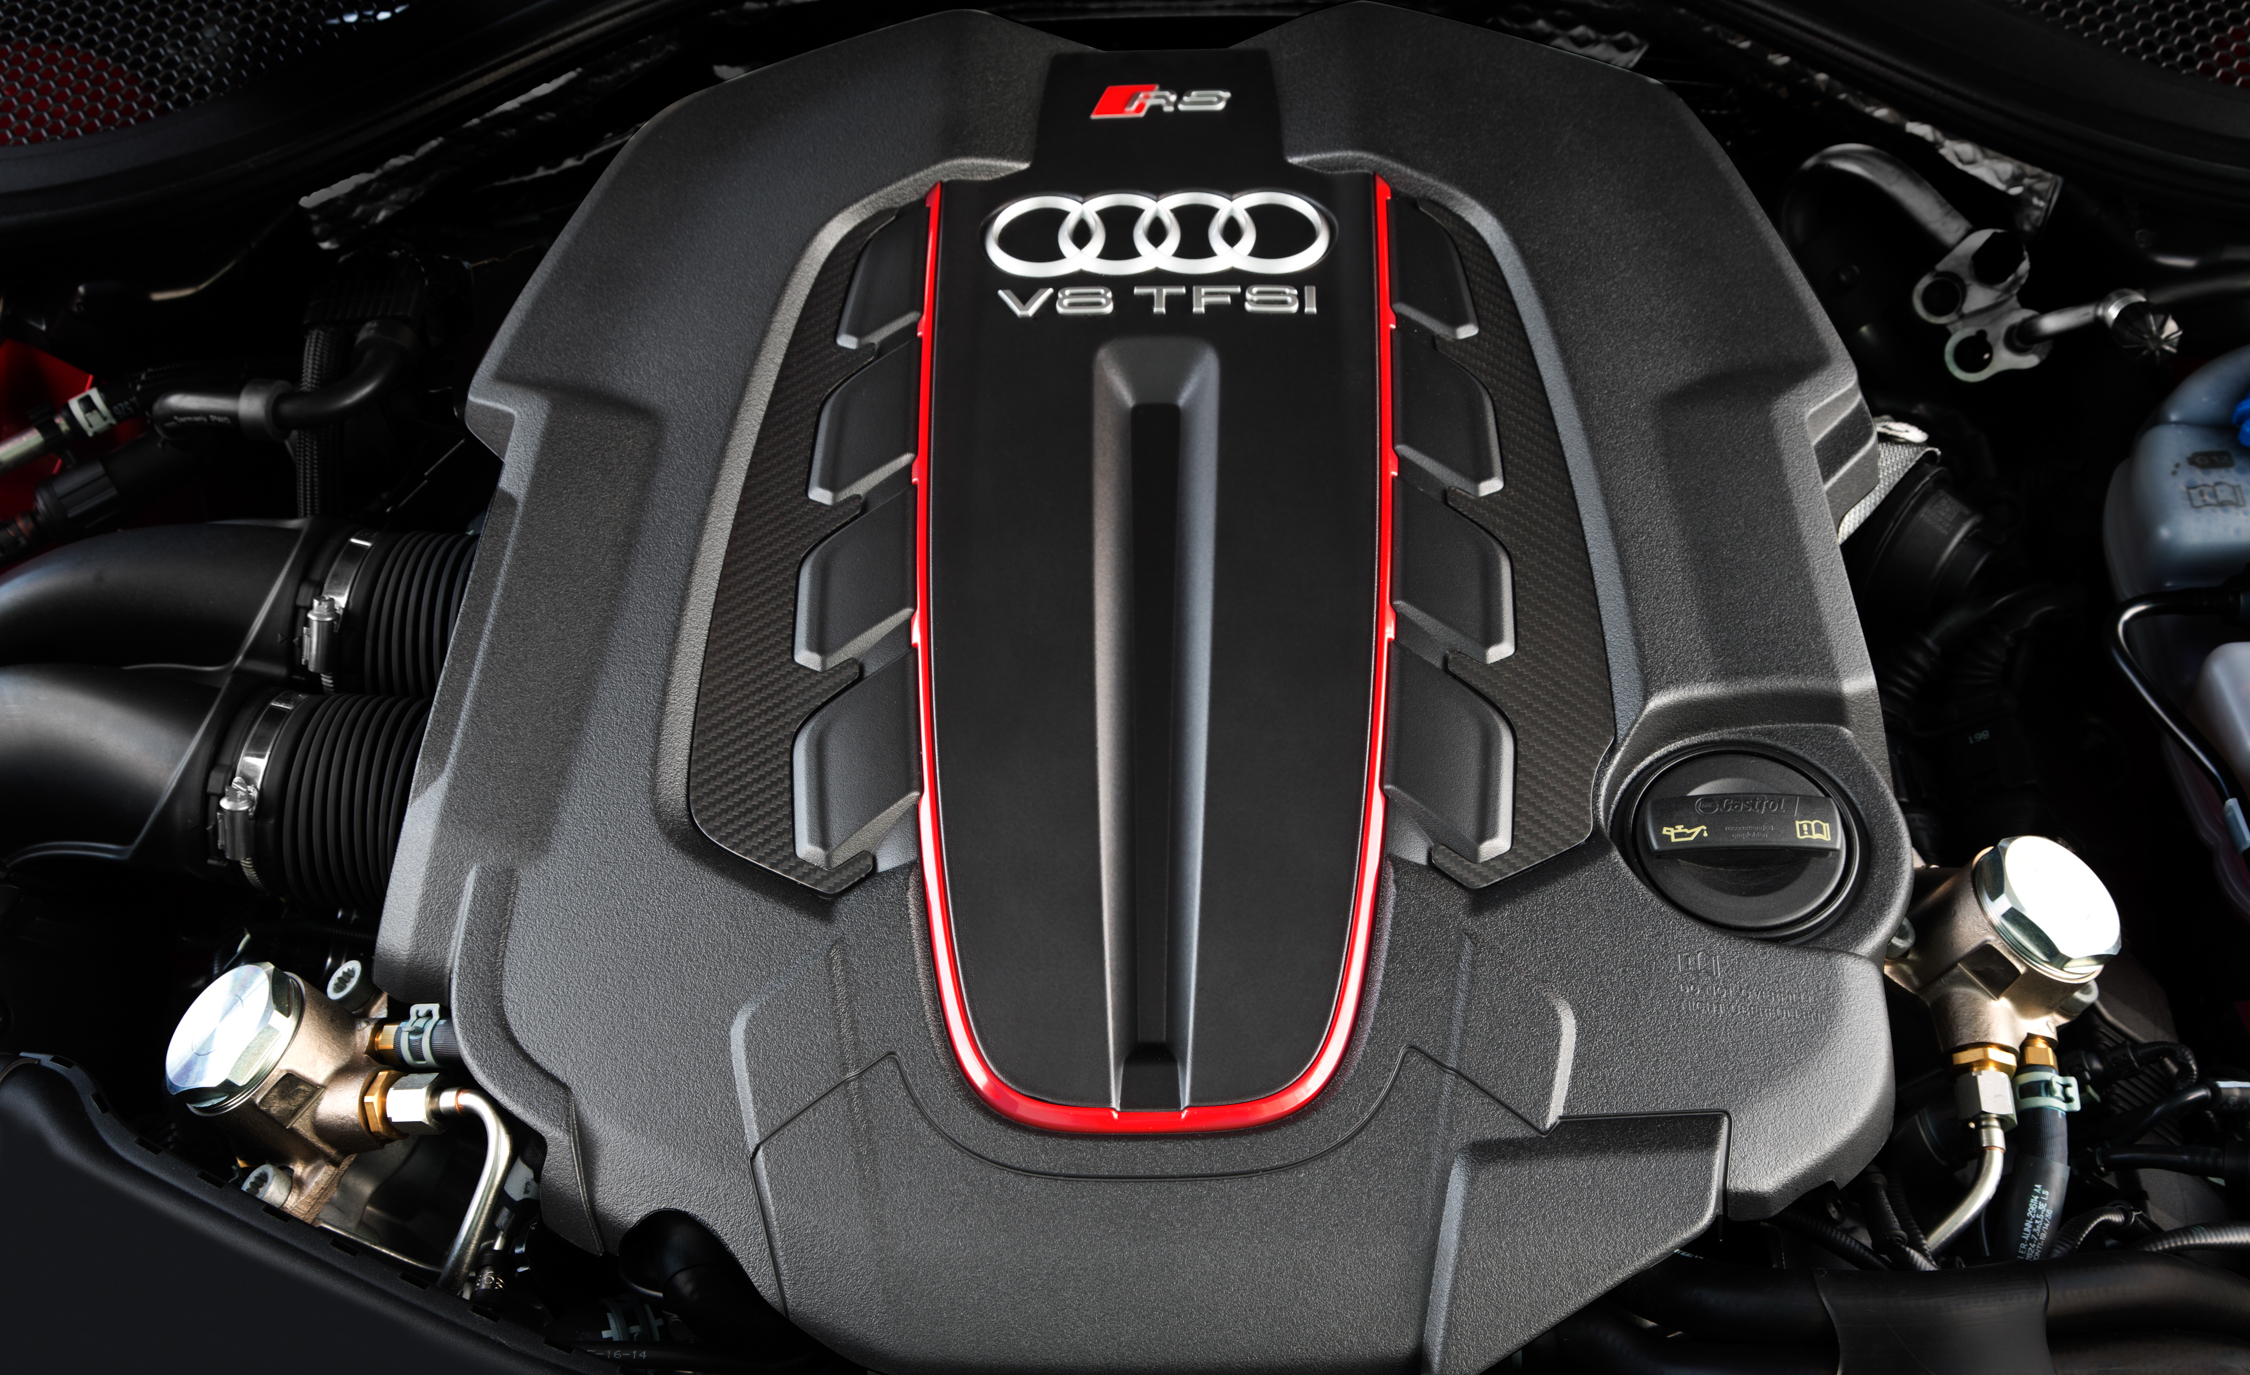 2016 Audi RS7 Turbocharged 4.0 Liter V 8 Engine (Photo 20 of 20)